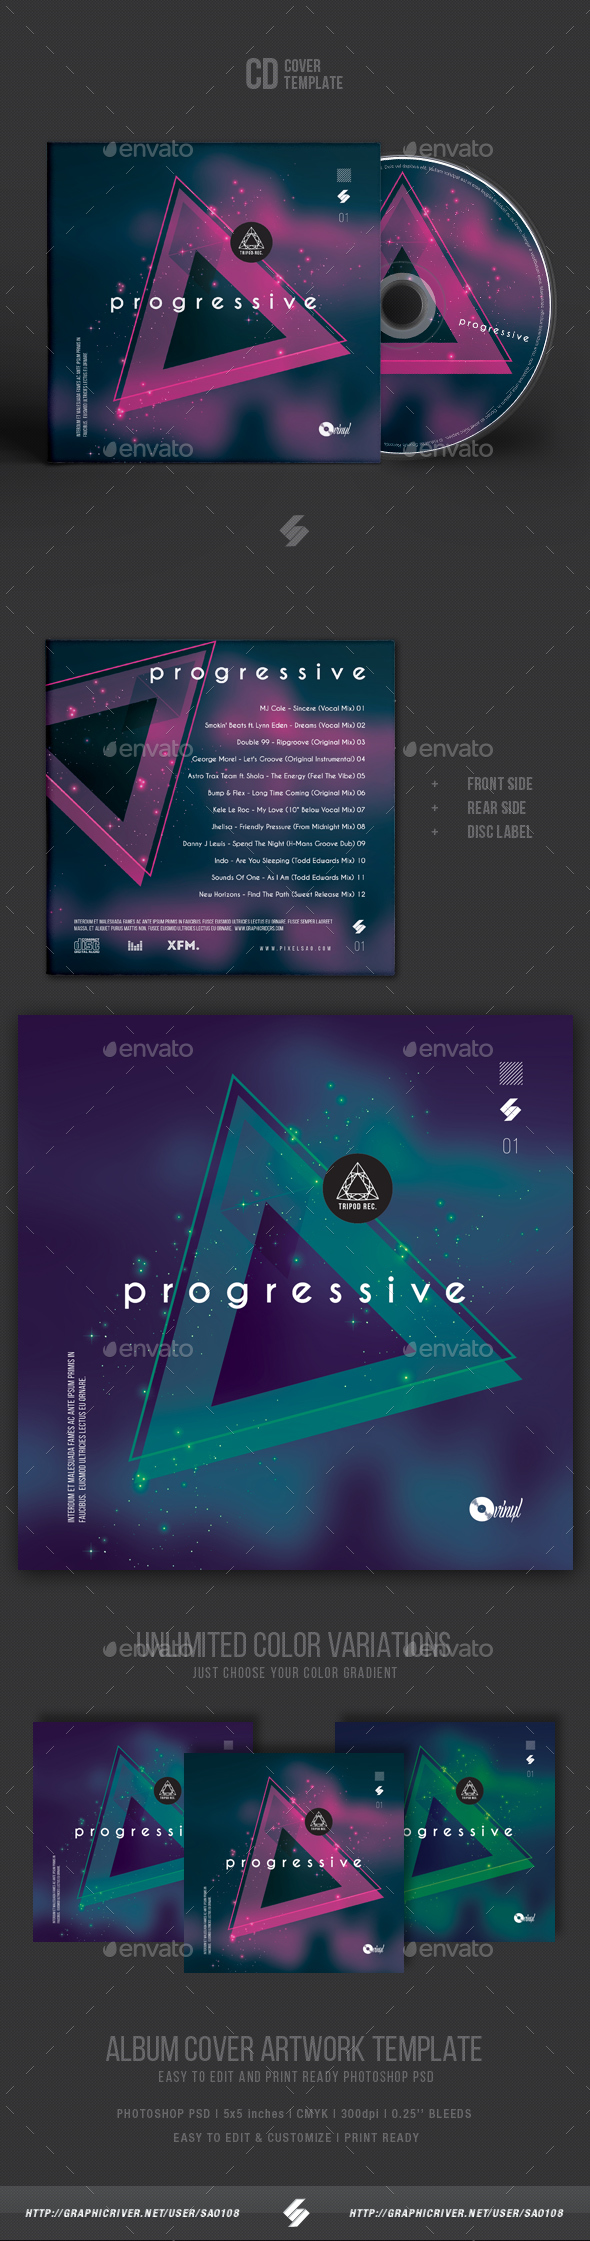 Cd Case Artwork Template | Progressive Electronic Music Cd Cover Artwork Template By Sao108